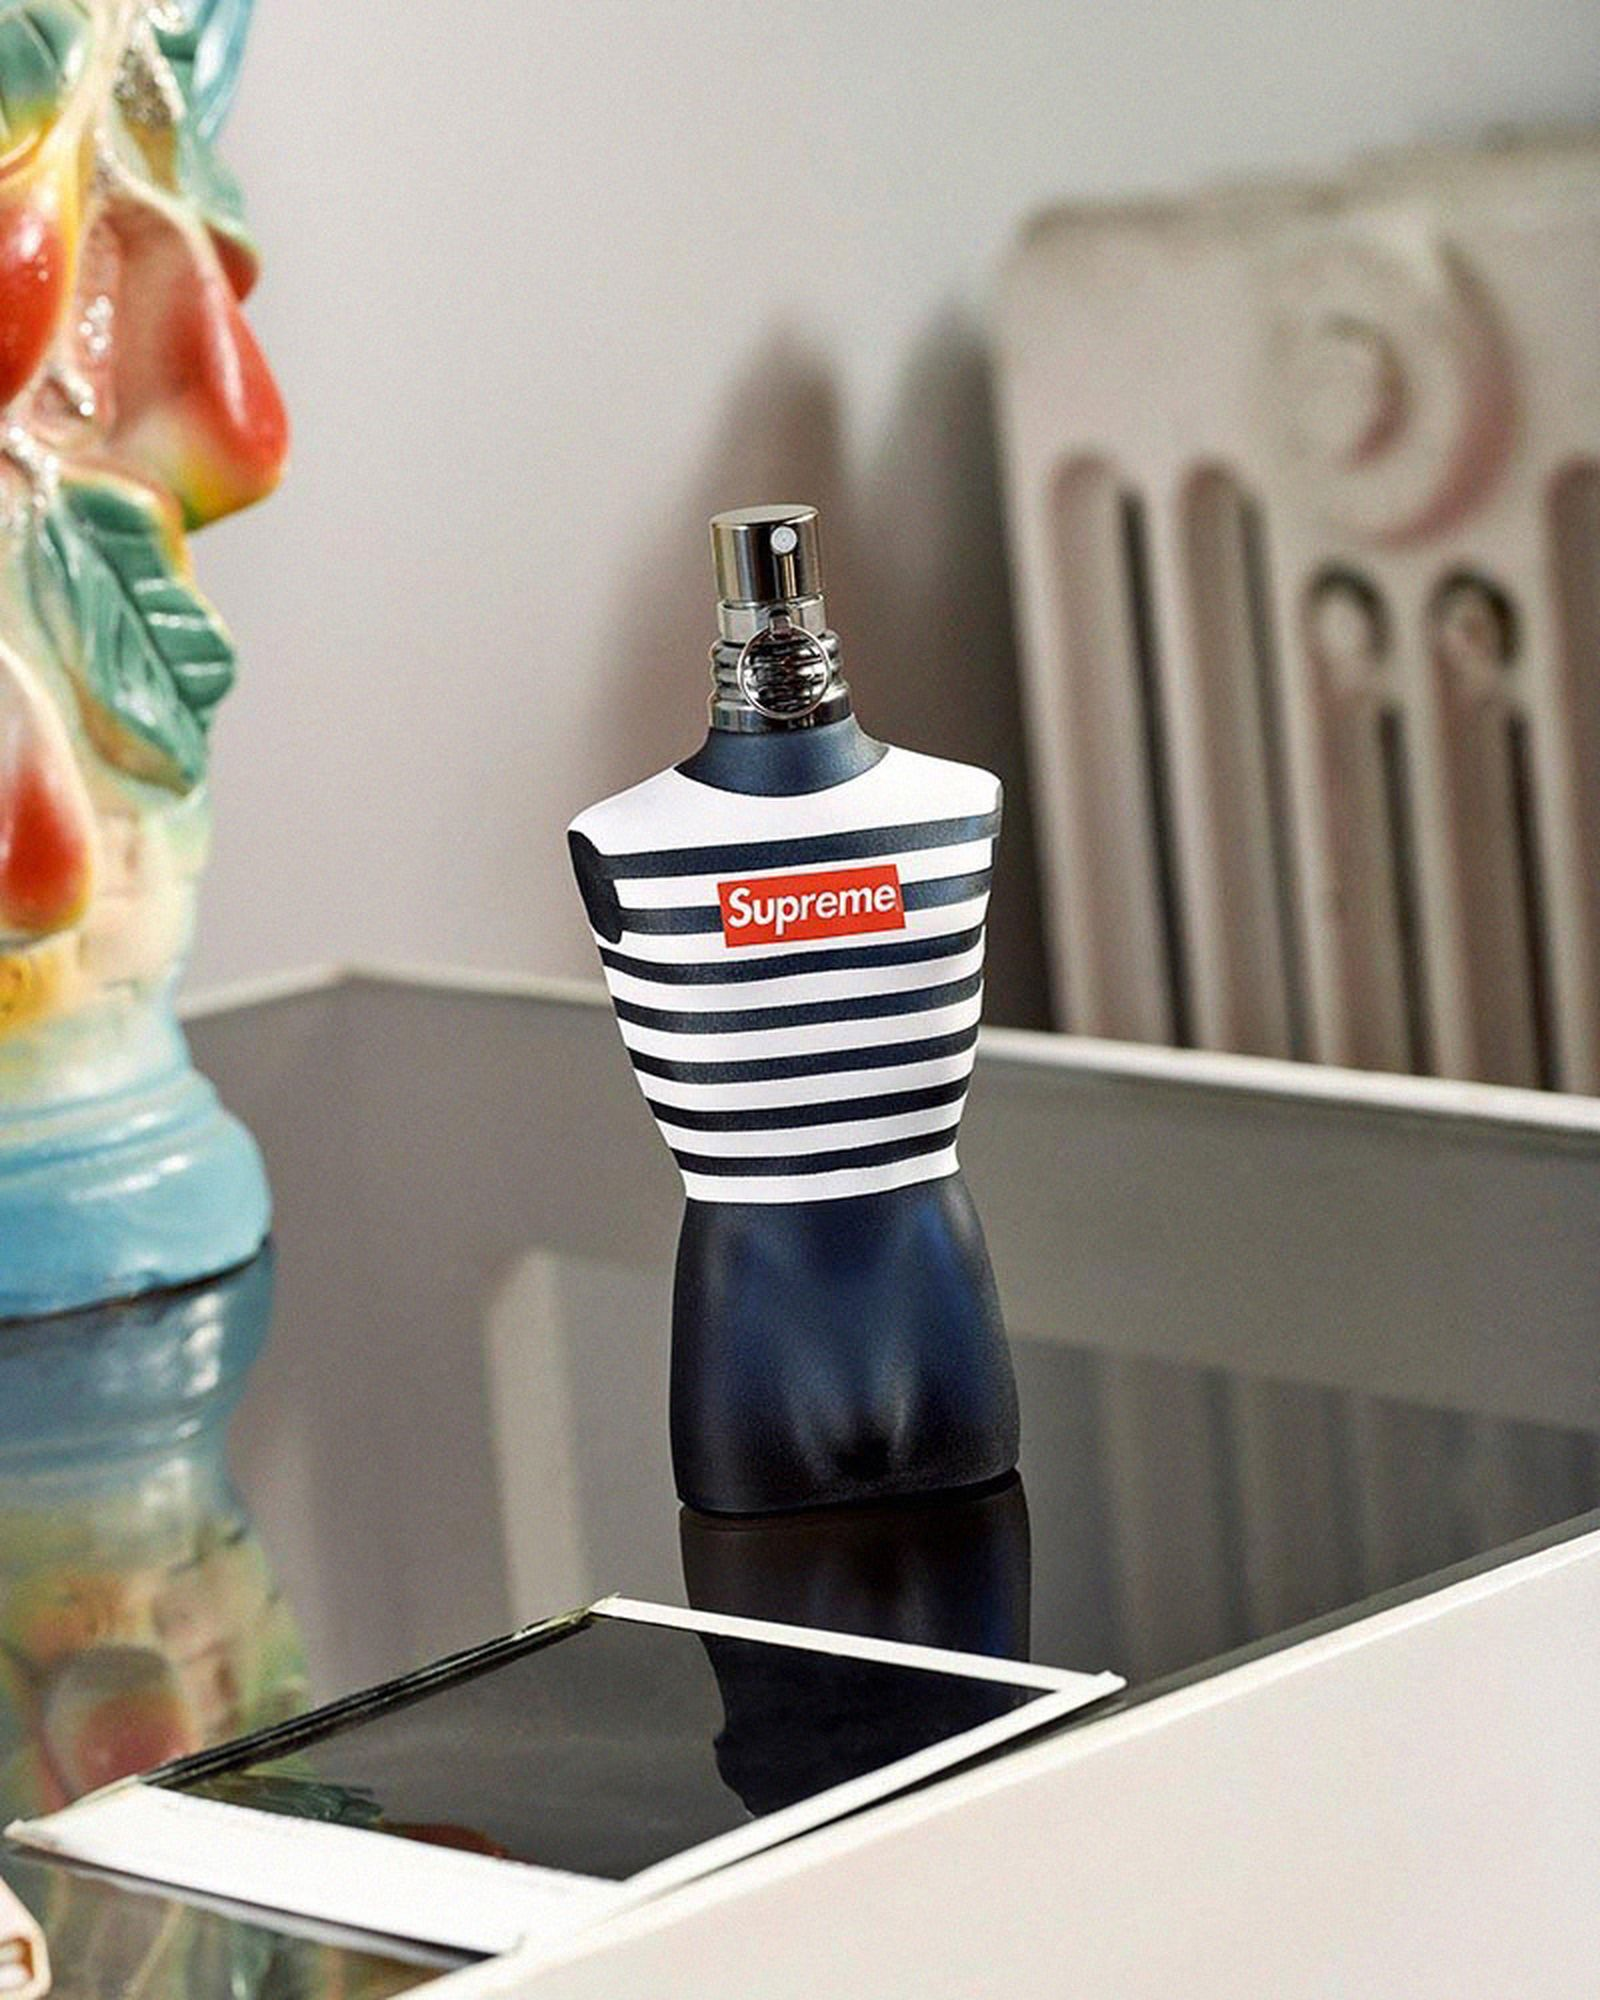 gaultiers le male scent is a supreme collectible for the ages jean-paul gaultier